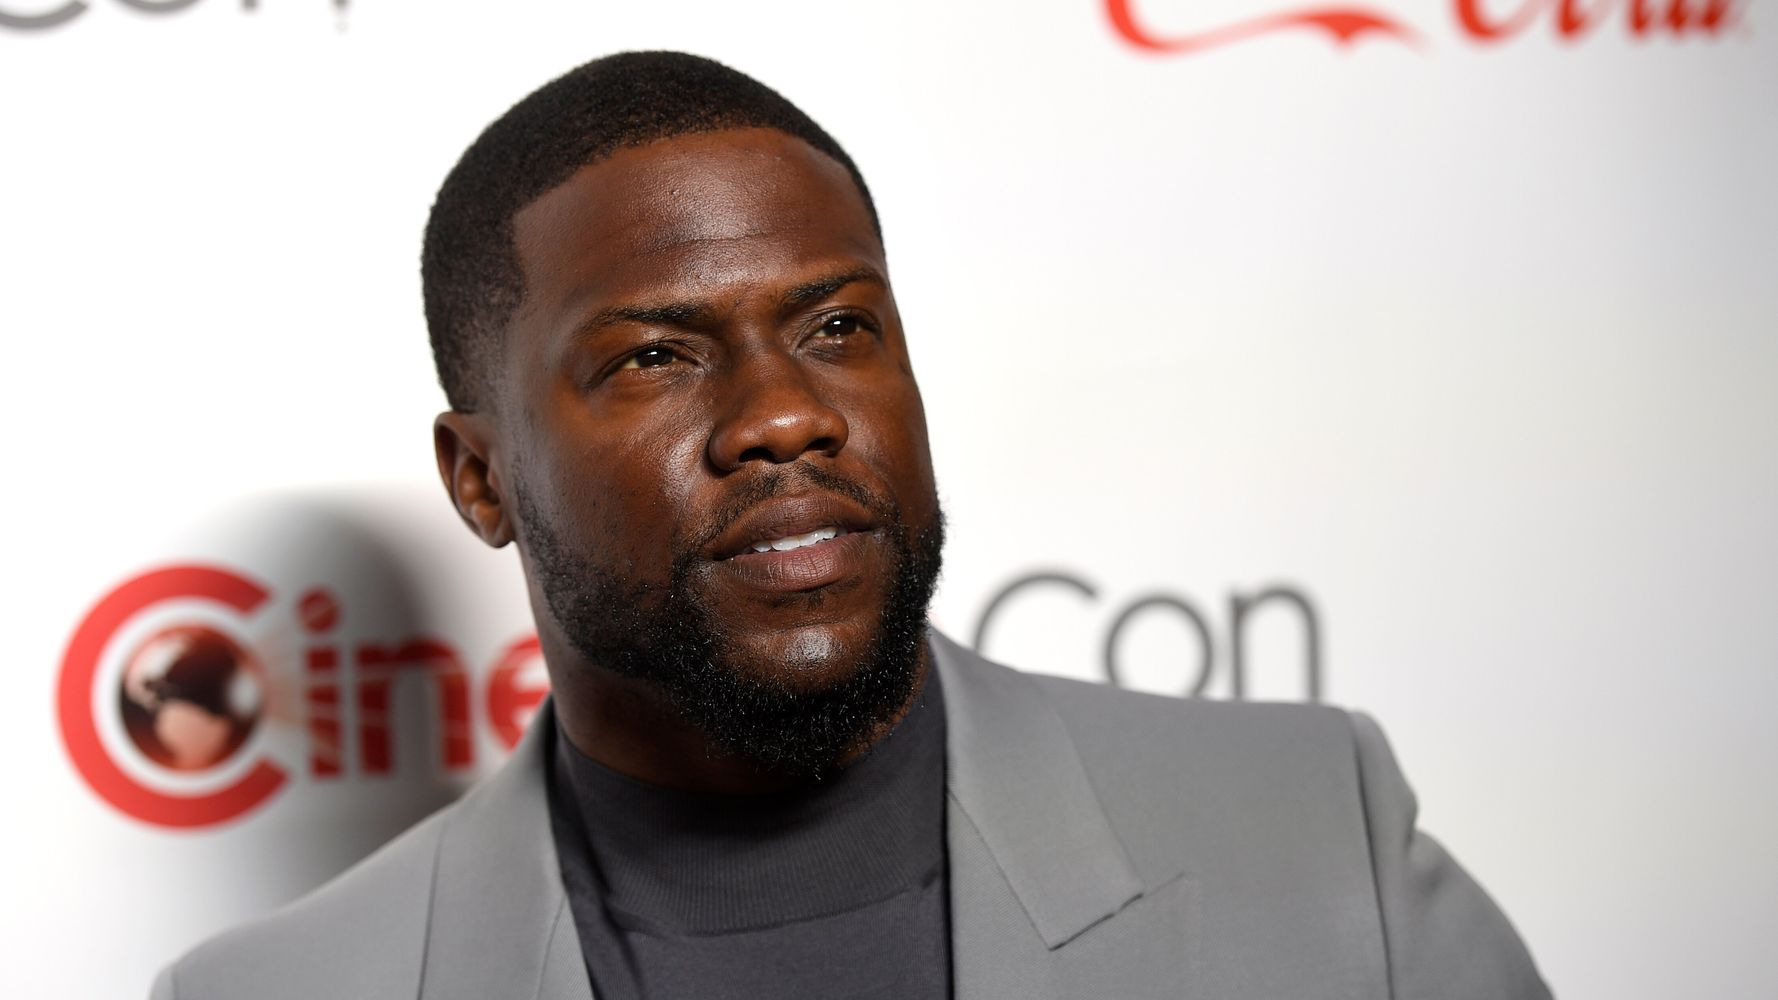 Westlake Legal Group 5da08acf2000006905500023 Kevin Hart Speaks Out On Car Crash: 'Nothing But Love' For Driver